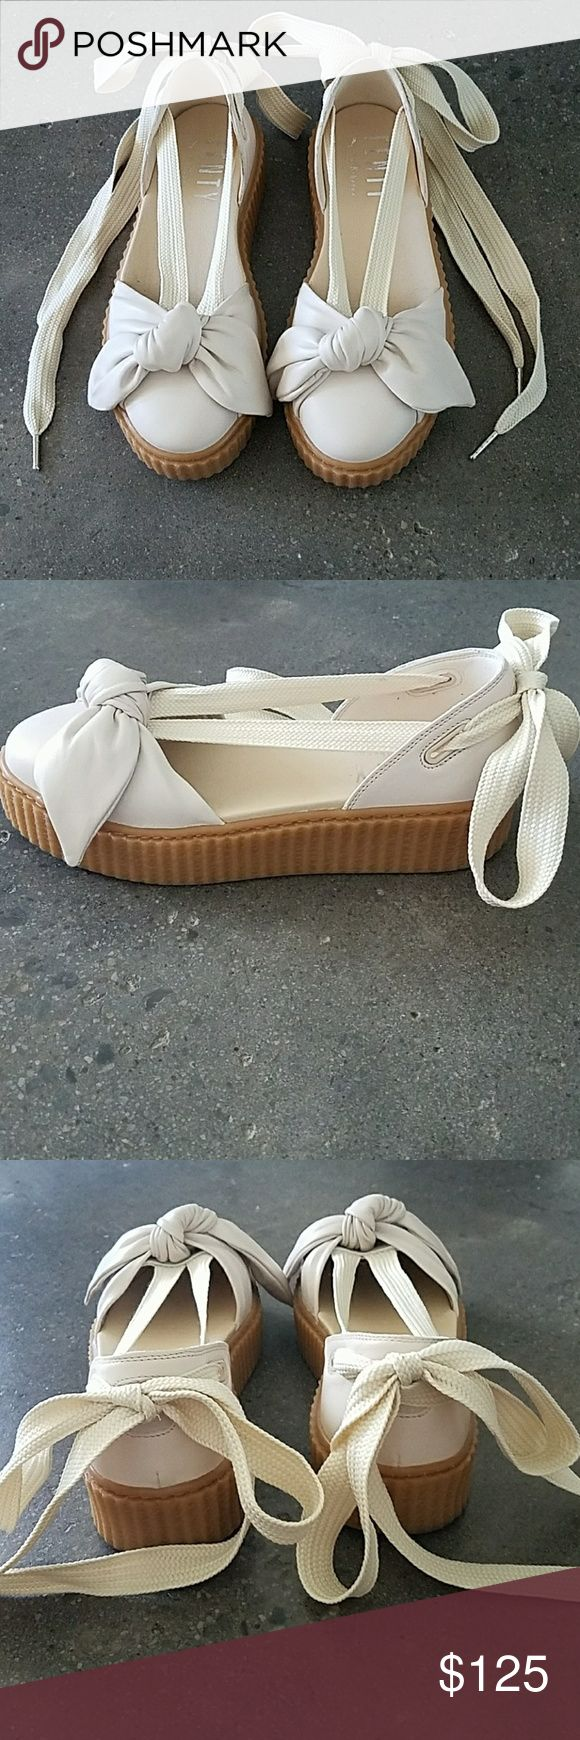 Fenty Puma By Rihanna Bow Creeper Sandal Brand new (only worn once) Rihanna Fenty Puma sandals with wrap around laces in beige. Comes with Fenty black velvet shoe bag for storage. Rihanna Shoes Sandals